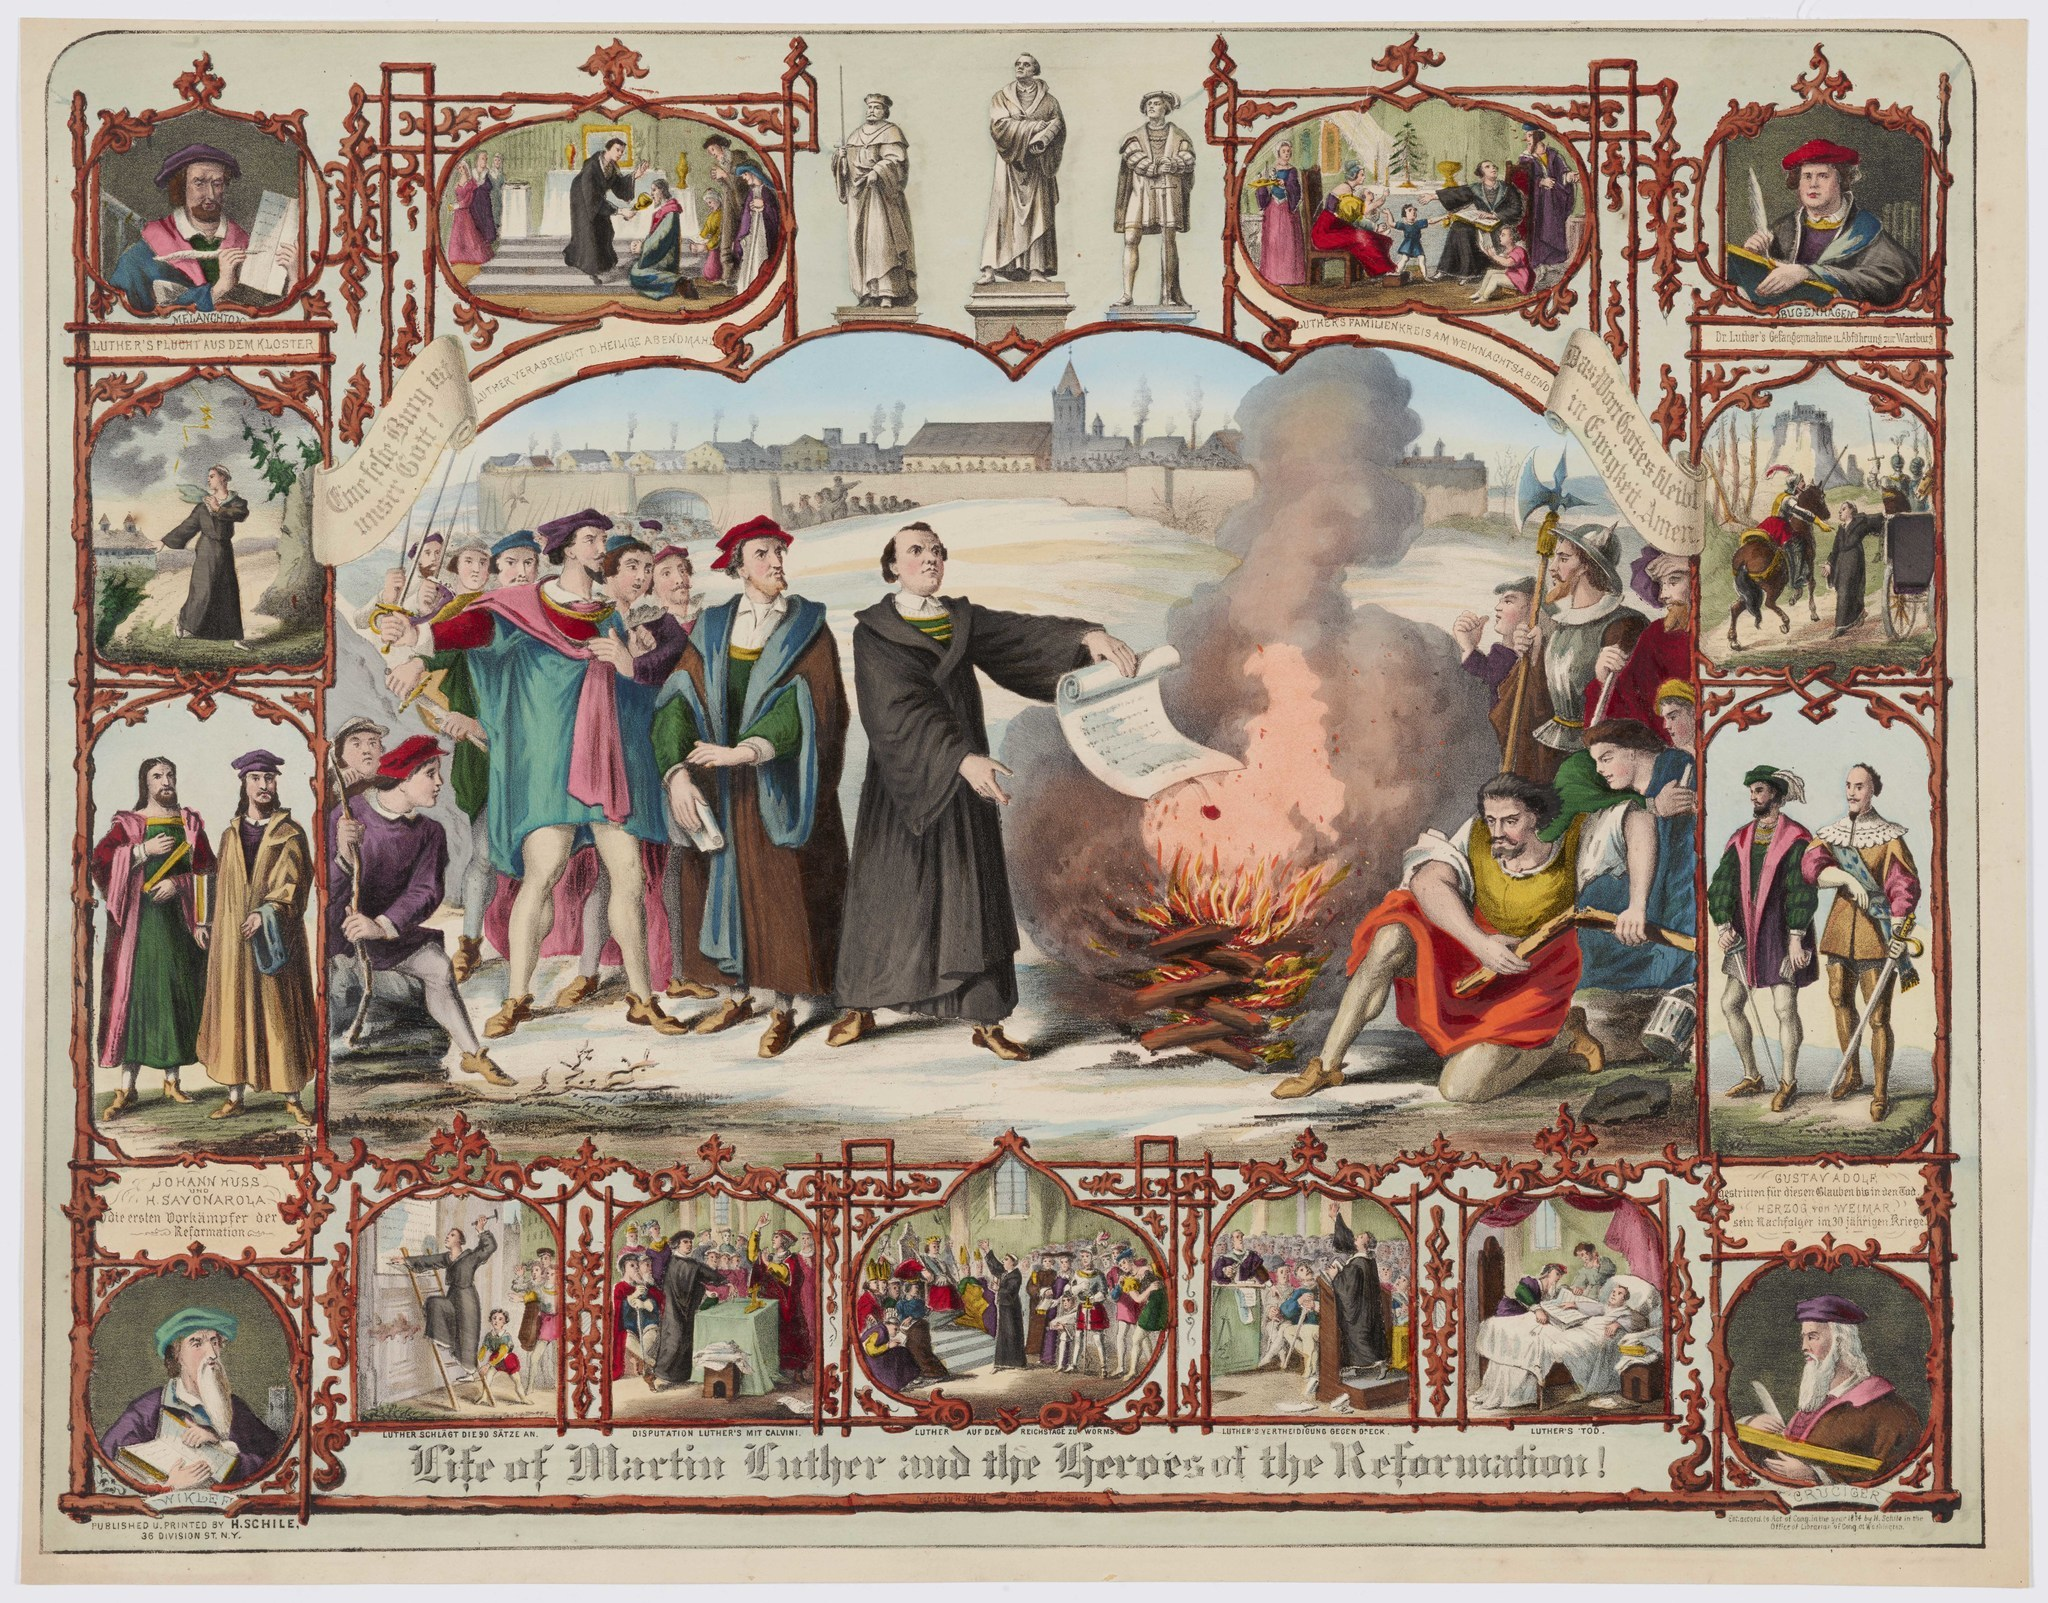 """Life of Martin Luther and the heroes of the Reformation,"" 1874, by H. Breul after H. Brückner."